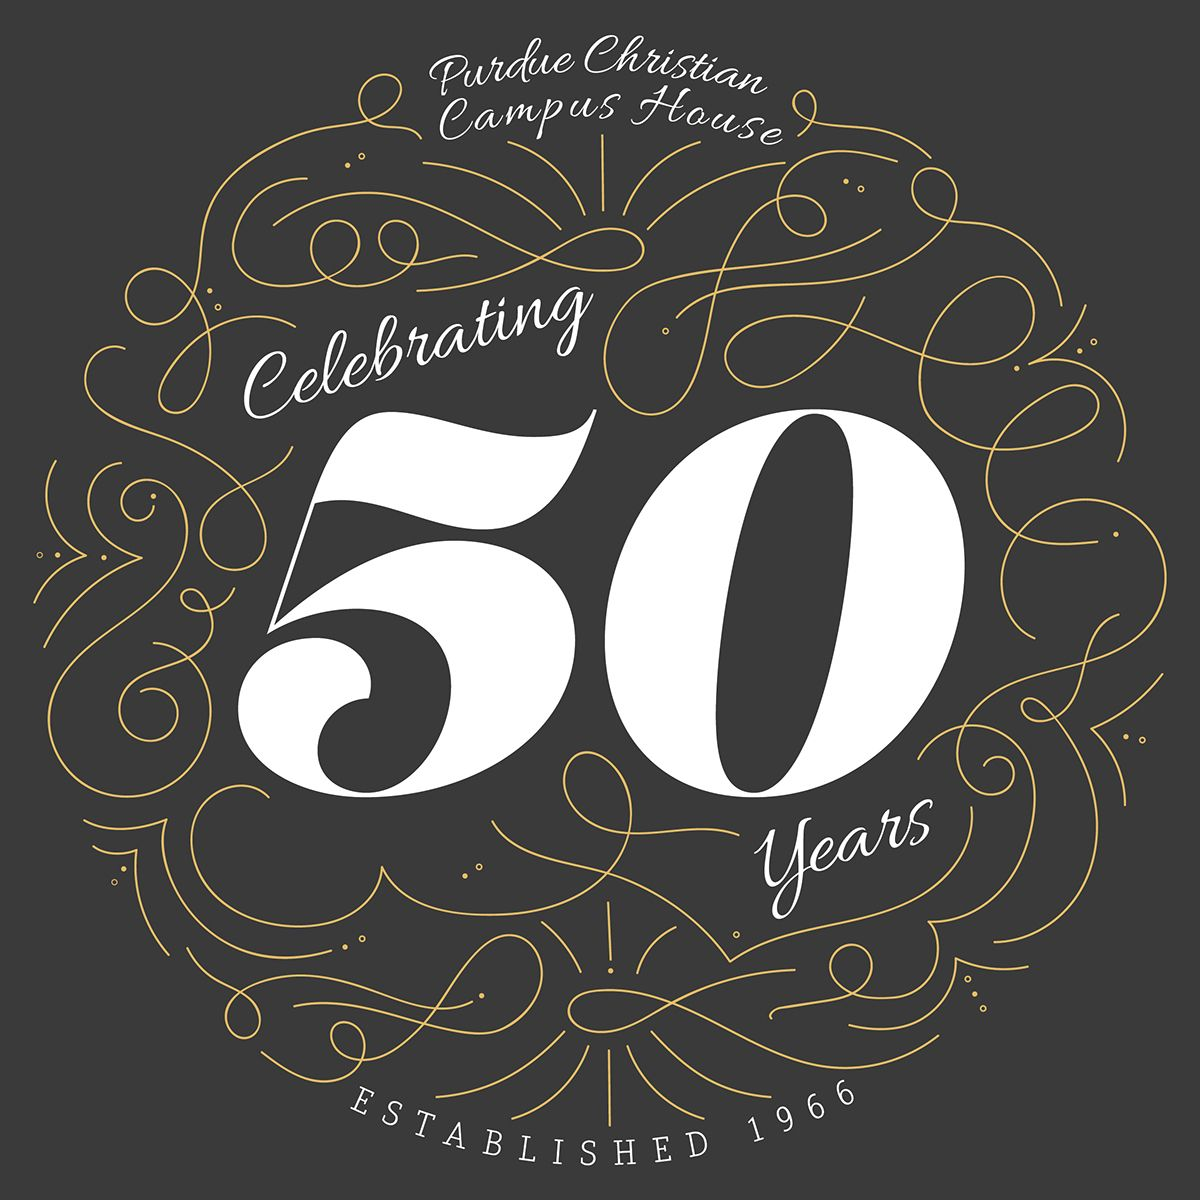 50th Anniversary of Purdue Christian Campus House on